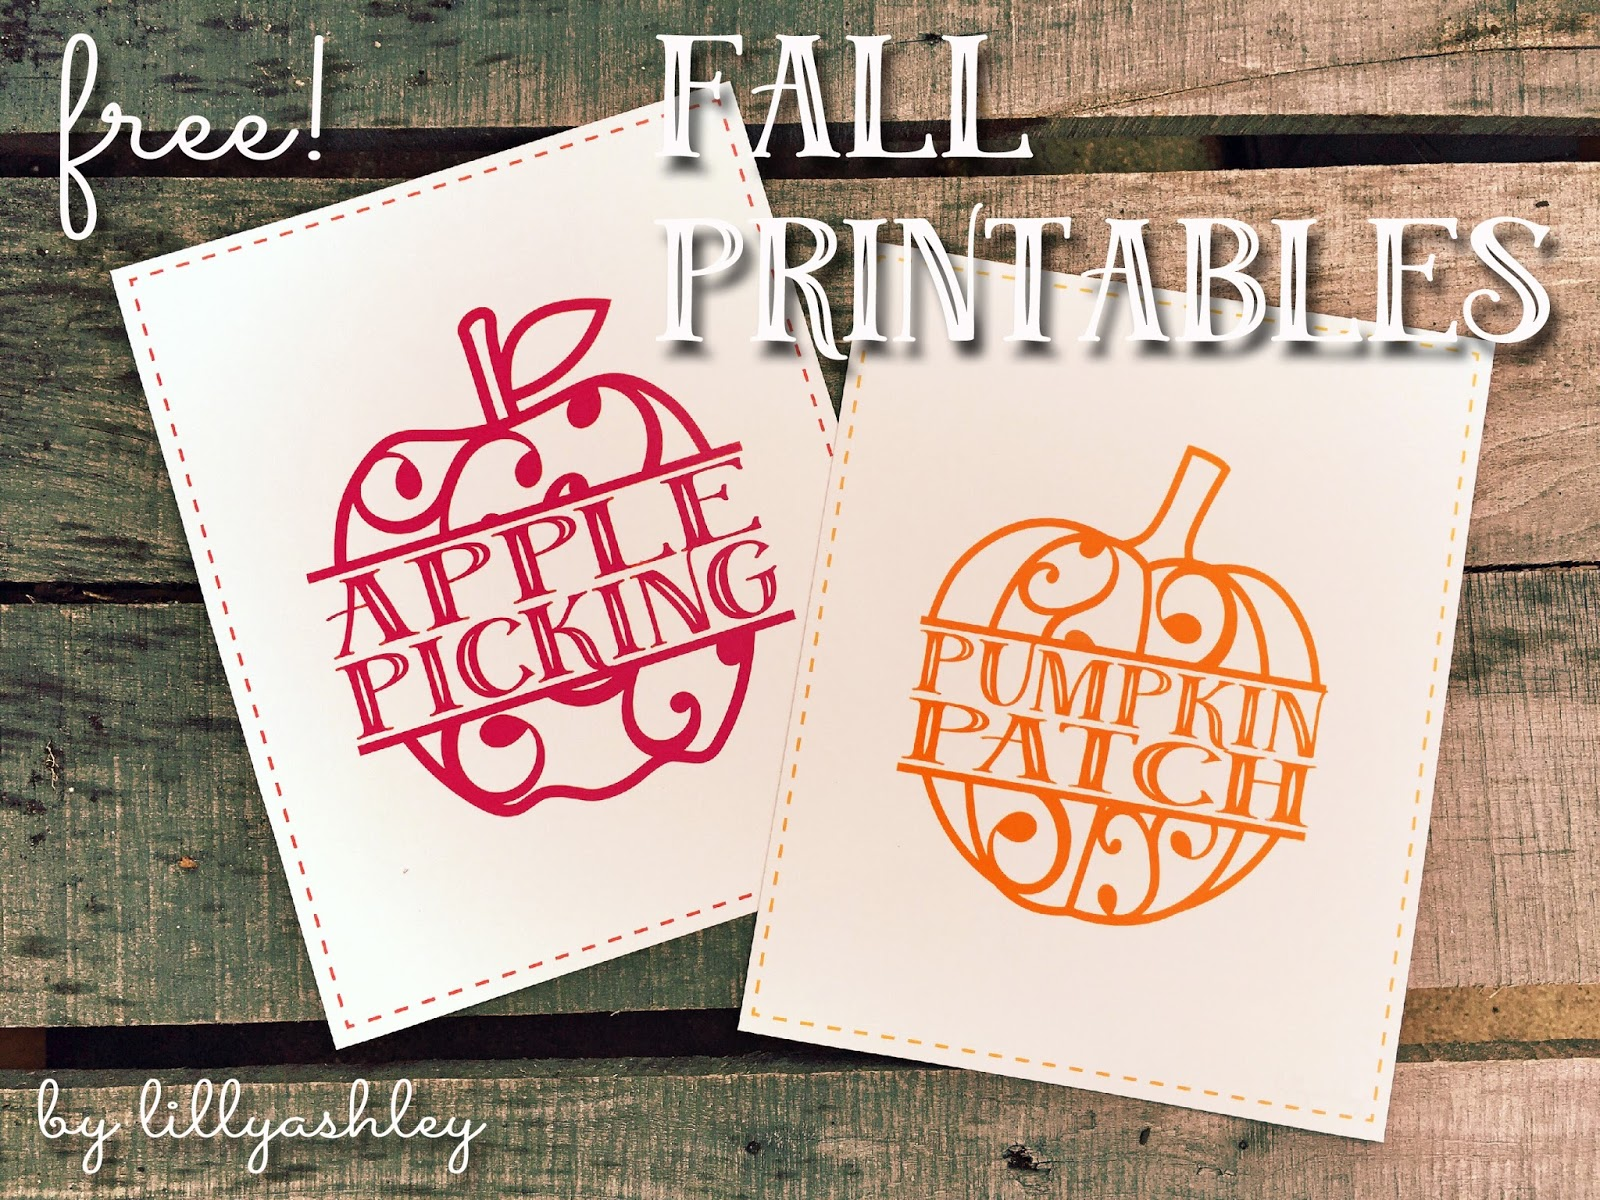 Make It Create By Lillyashley Eebie Downloads Free Fall Printables Applepicking Pumpkinpatch